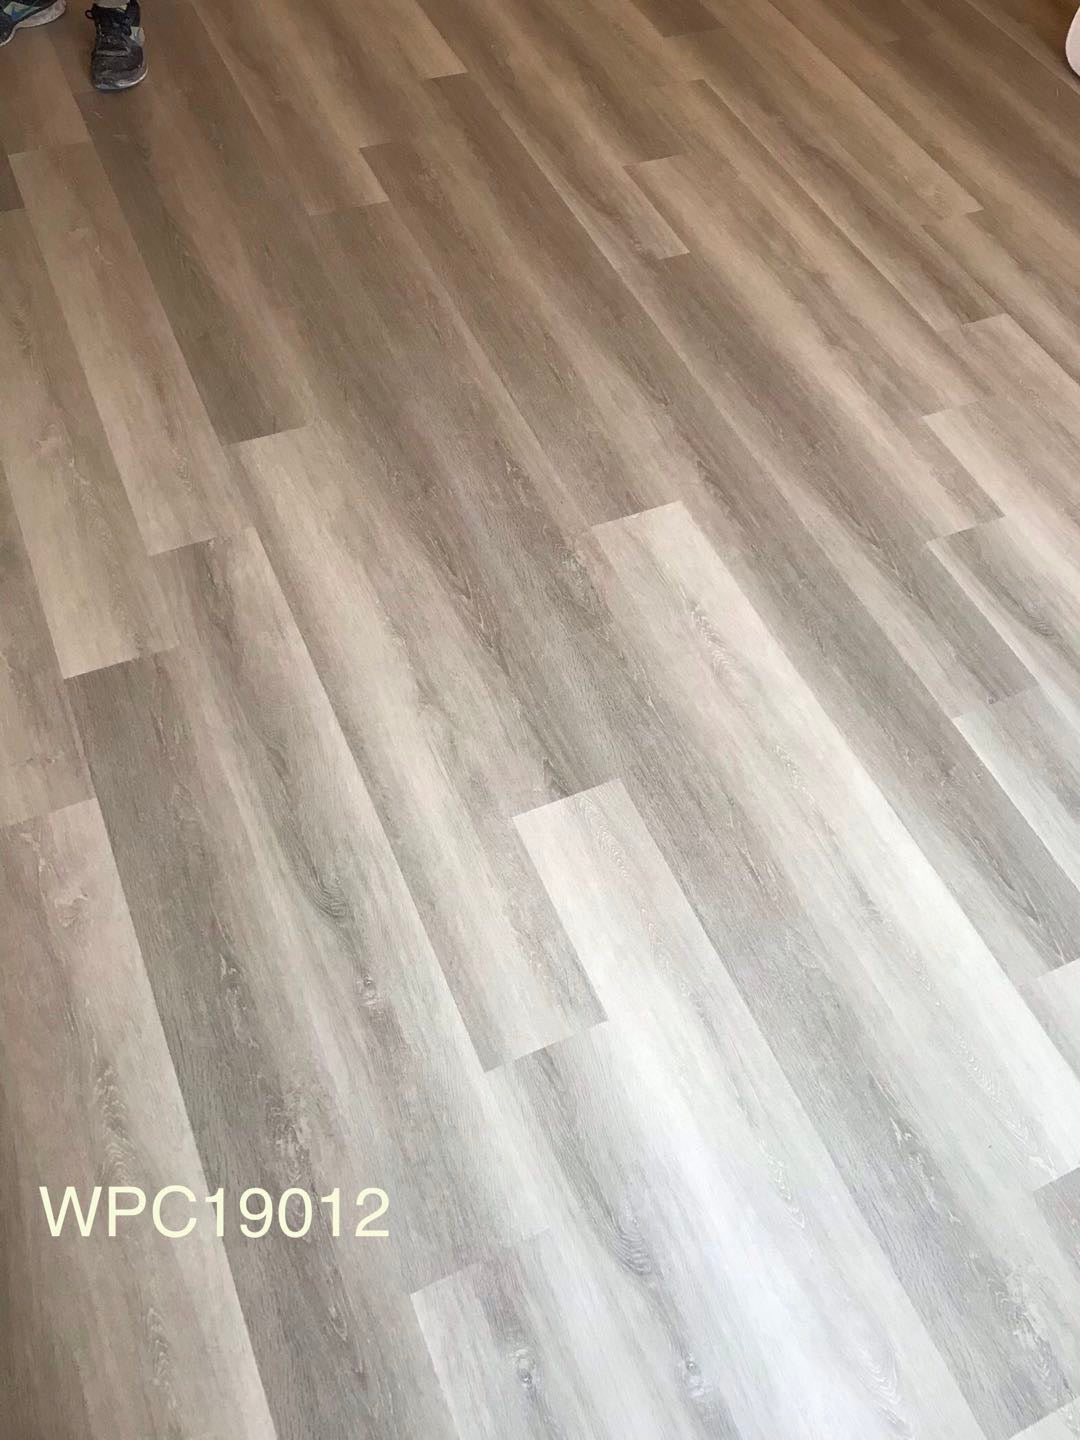 WPC 19012 COASTAL GREY 7.05'' Wide x 5/16'' Thick-Padding Attached (23.3 Sq.ft/Carton)